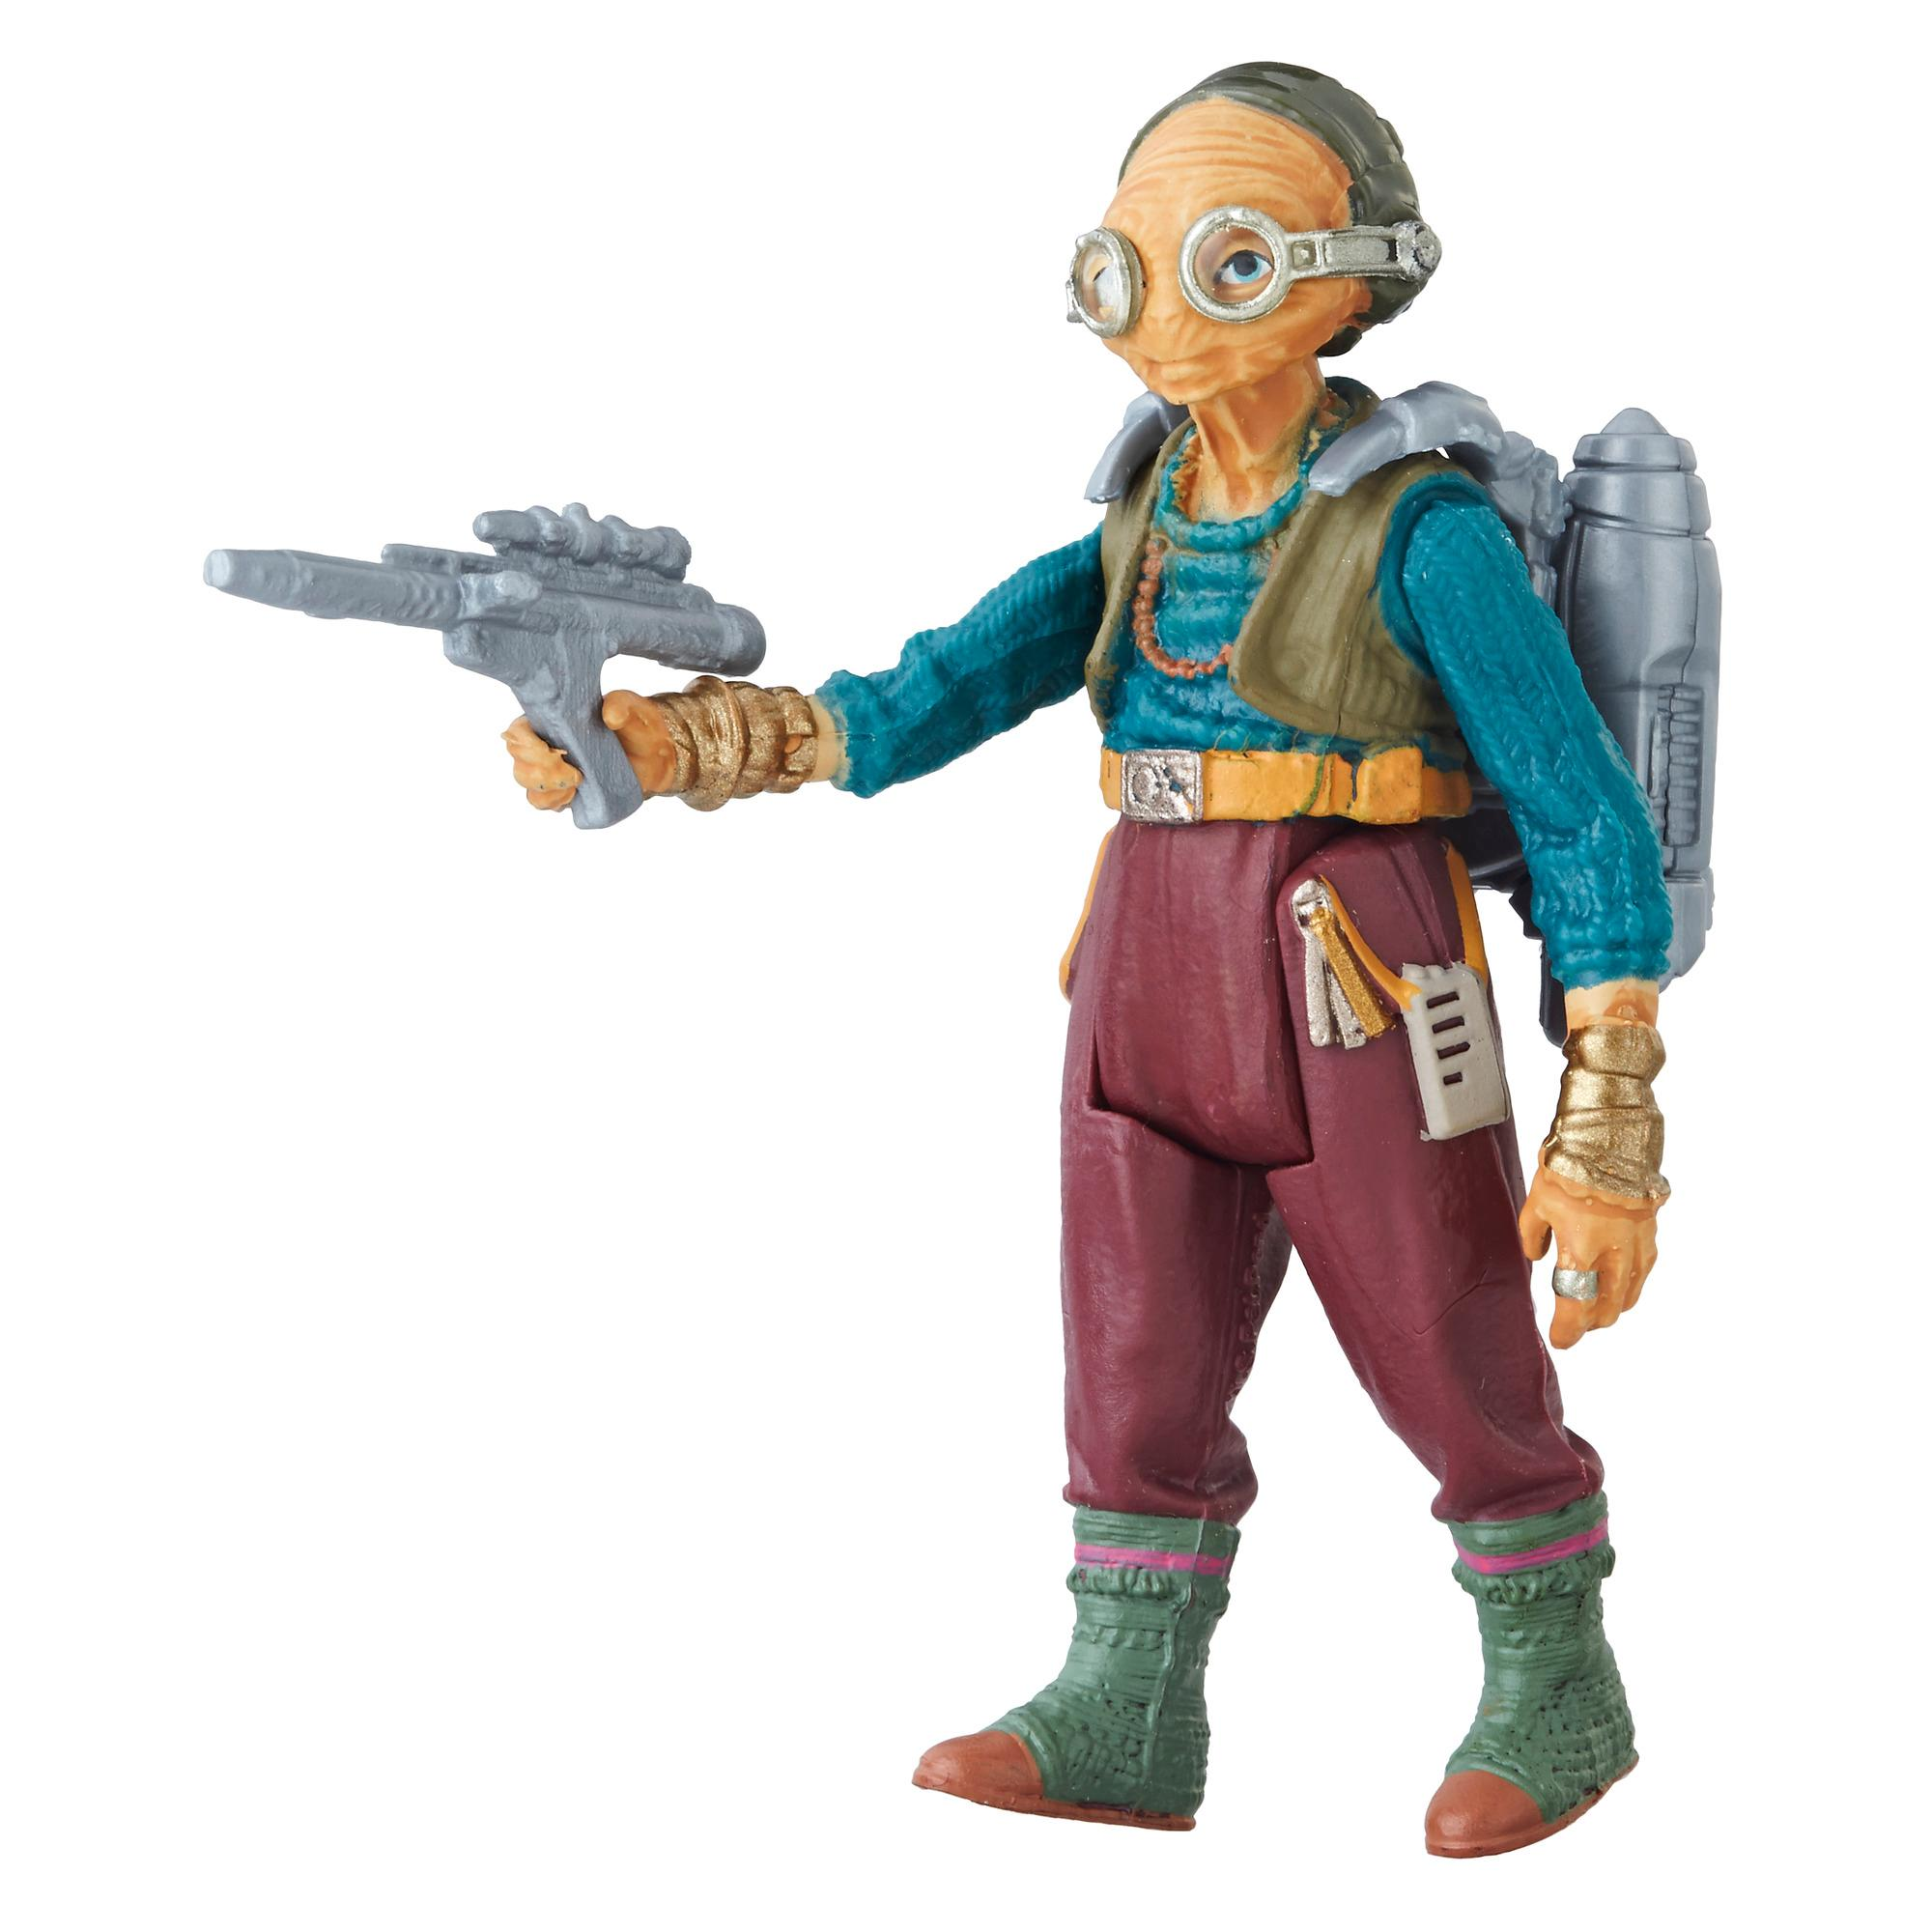 Star Wars Solo Film 3.75 FORCE LINK 2.0 Figur Maz Kanata